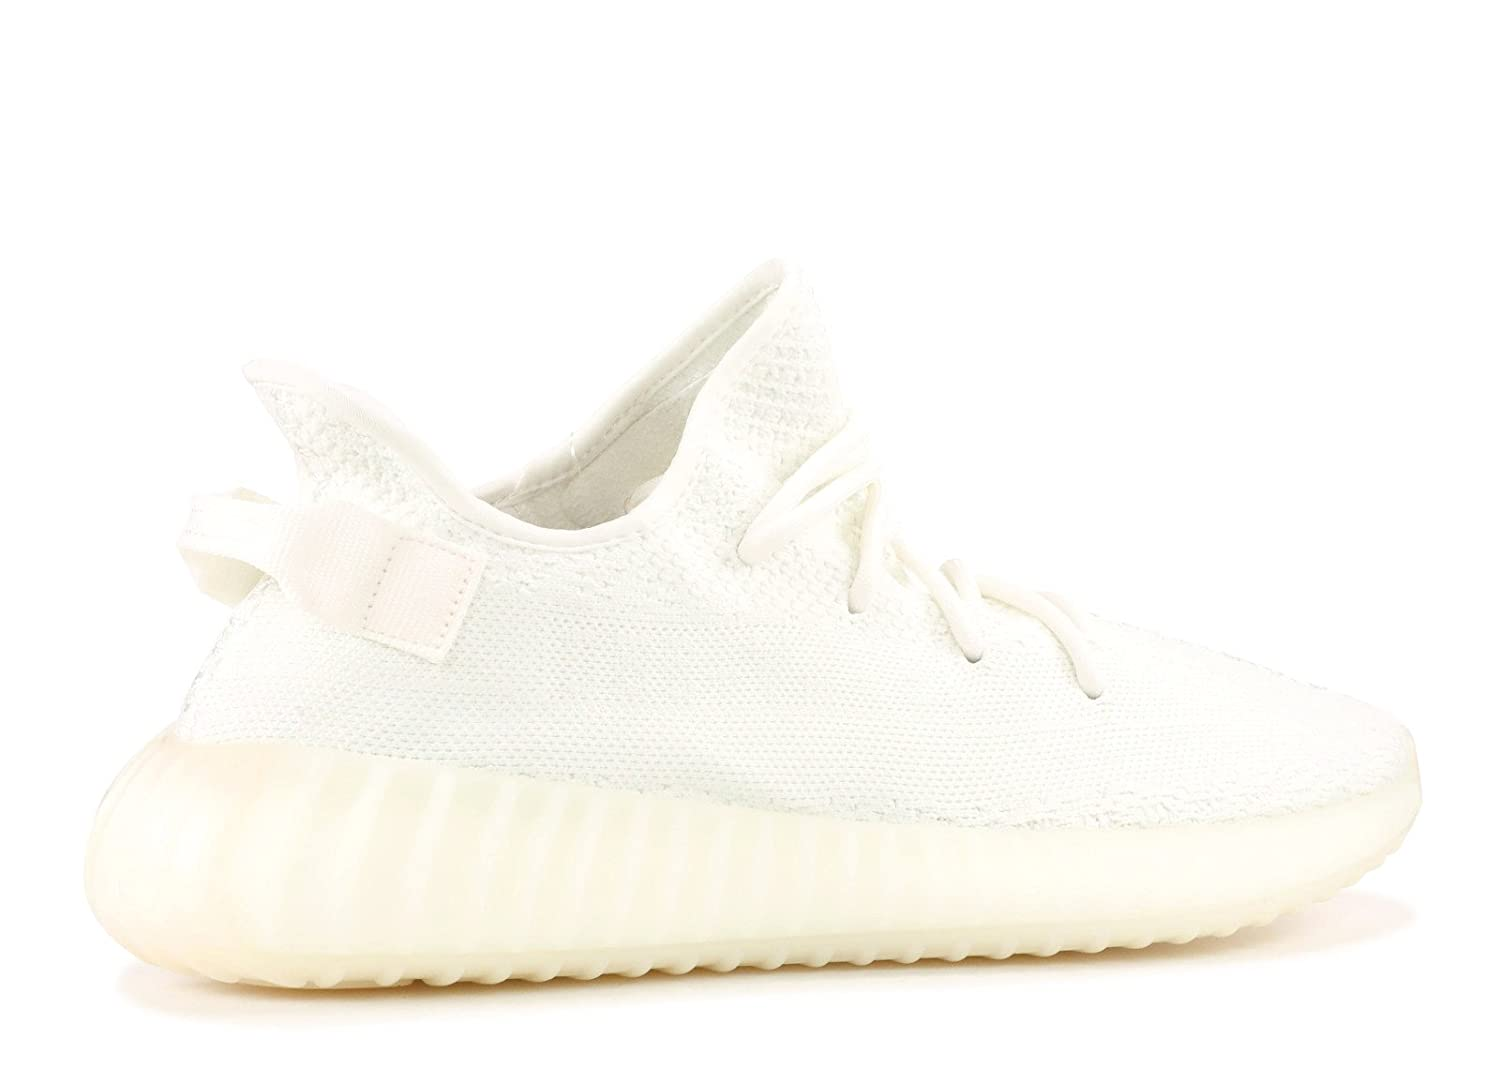 finest selection 66675 00a2a Adidas Yeezy Boost 350 V2